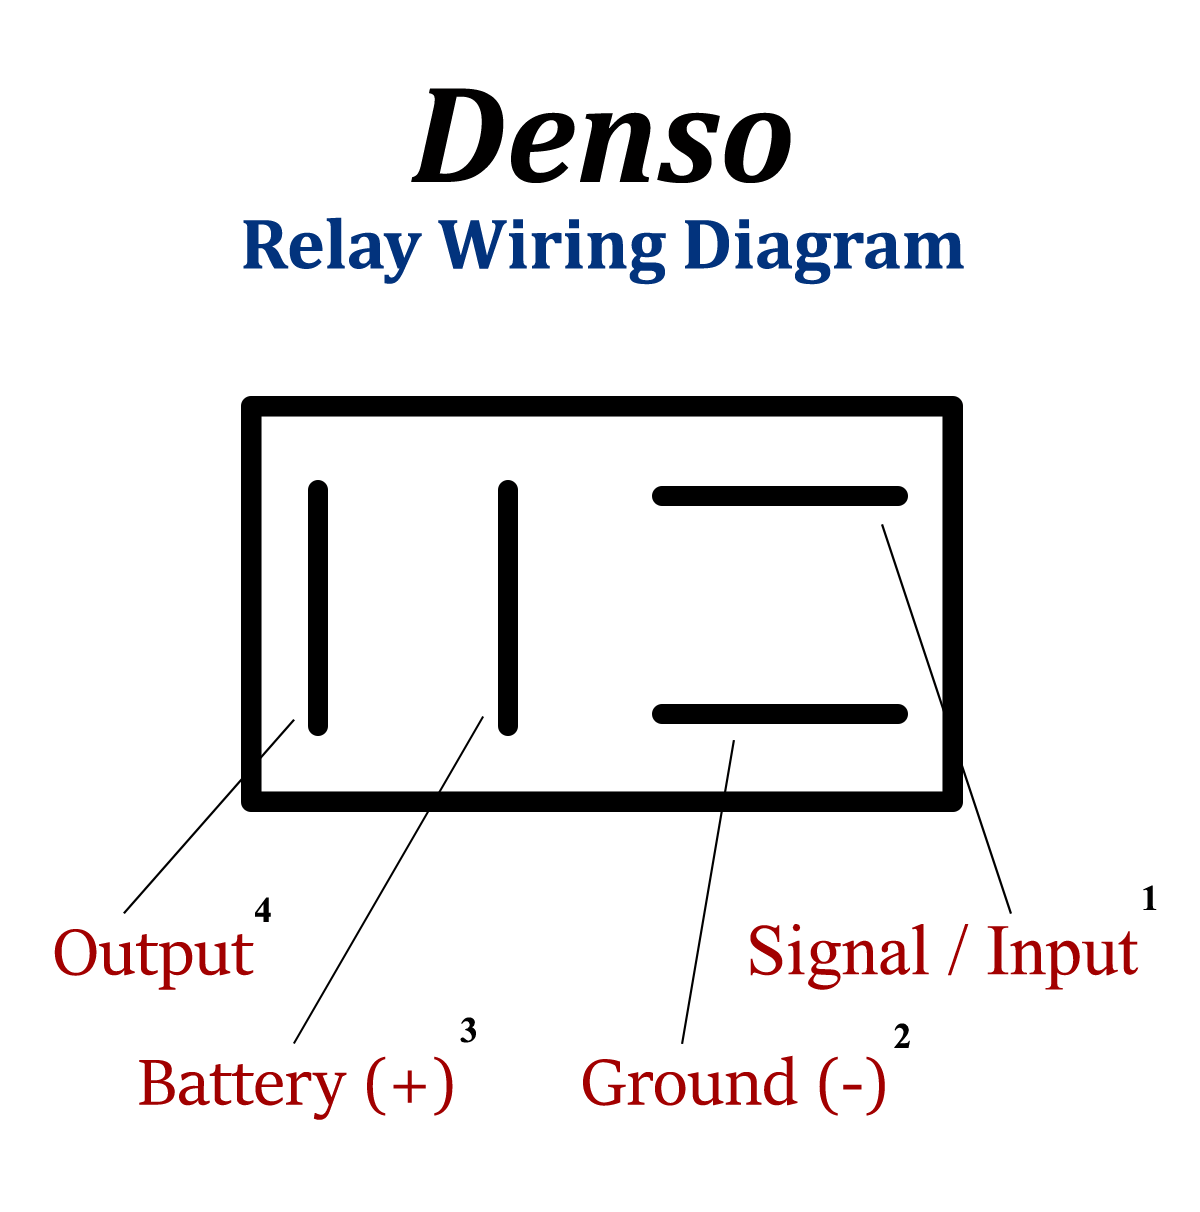 Denso Relay Wiring Diagram Benign Blog?resize\\\=297%2C300 wiring diagram for bello electric firep mod wiring wiring  at crackthecode.co